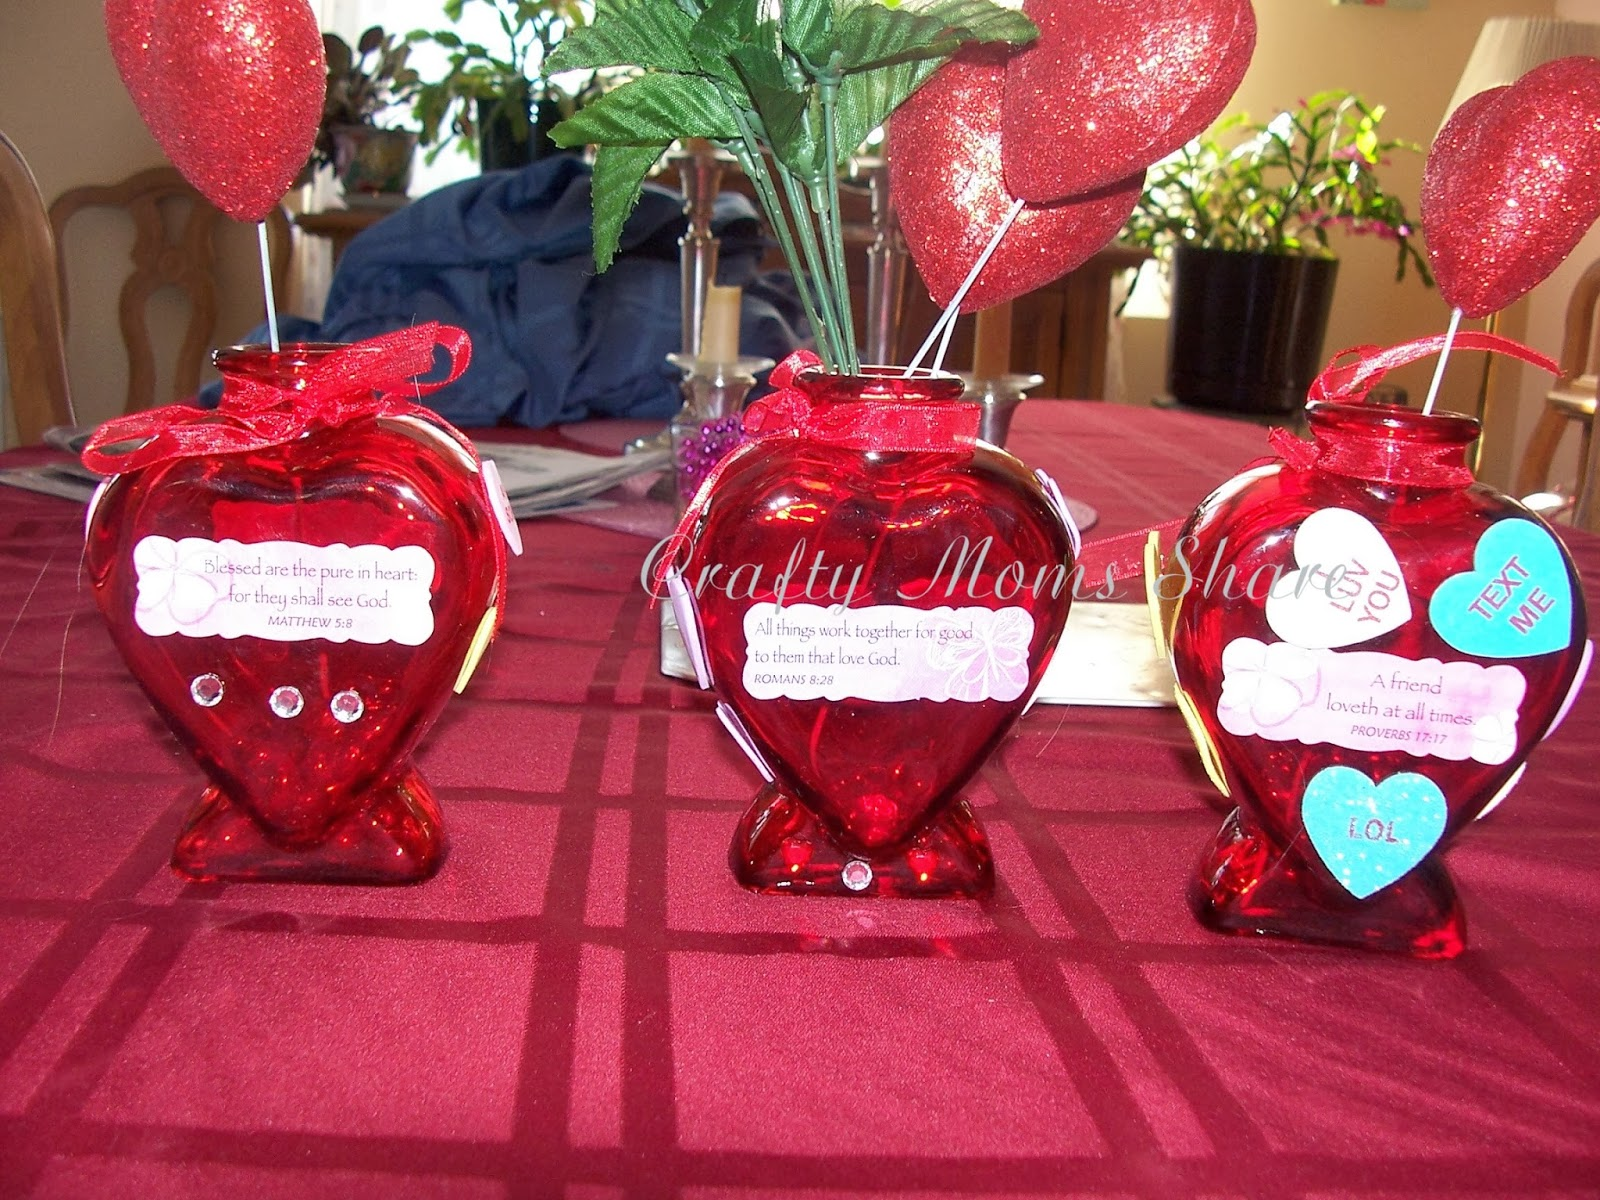 Crafty moms share valentines day crafts last year we bought these glass vases at the dollar tree our plan was to decorate them and give one to each grandmother and keep one it didnt happen reviewsmspy